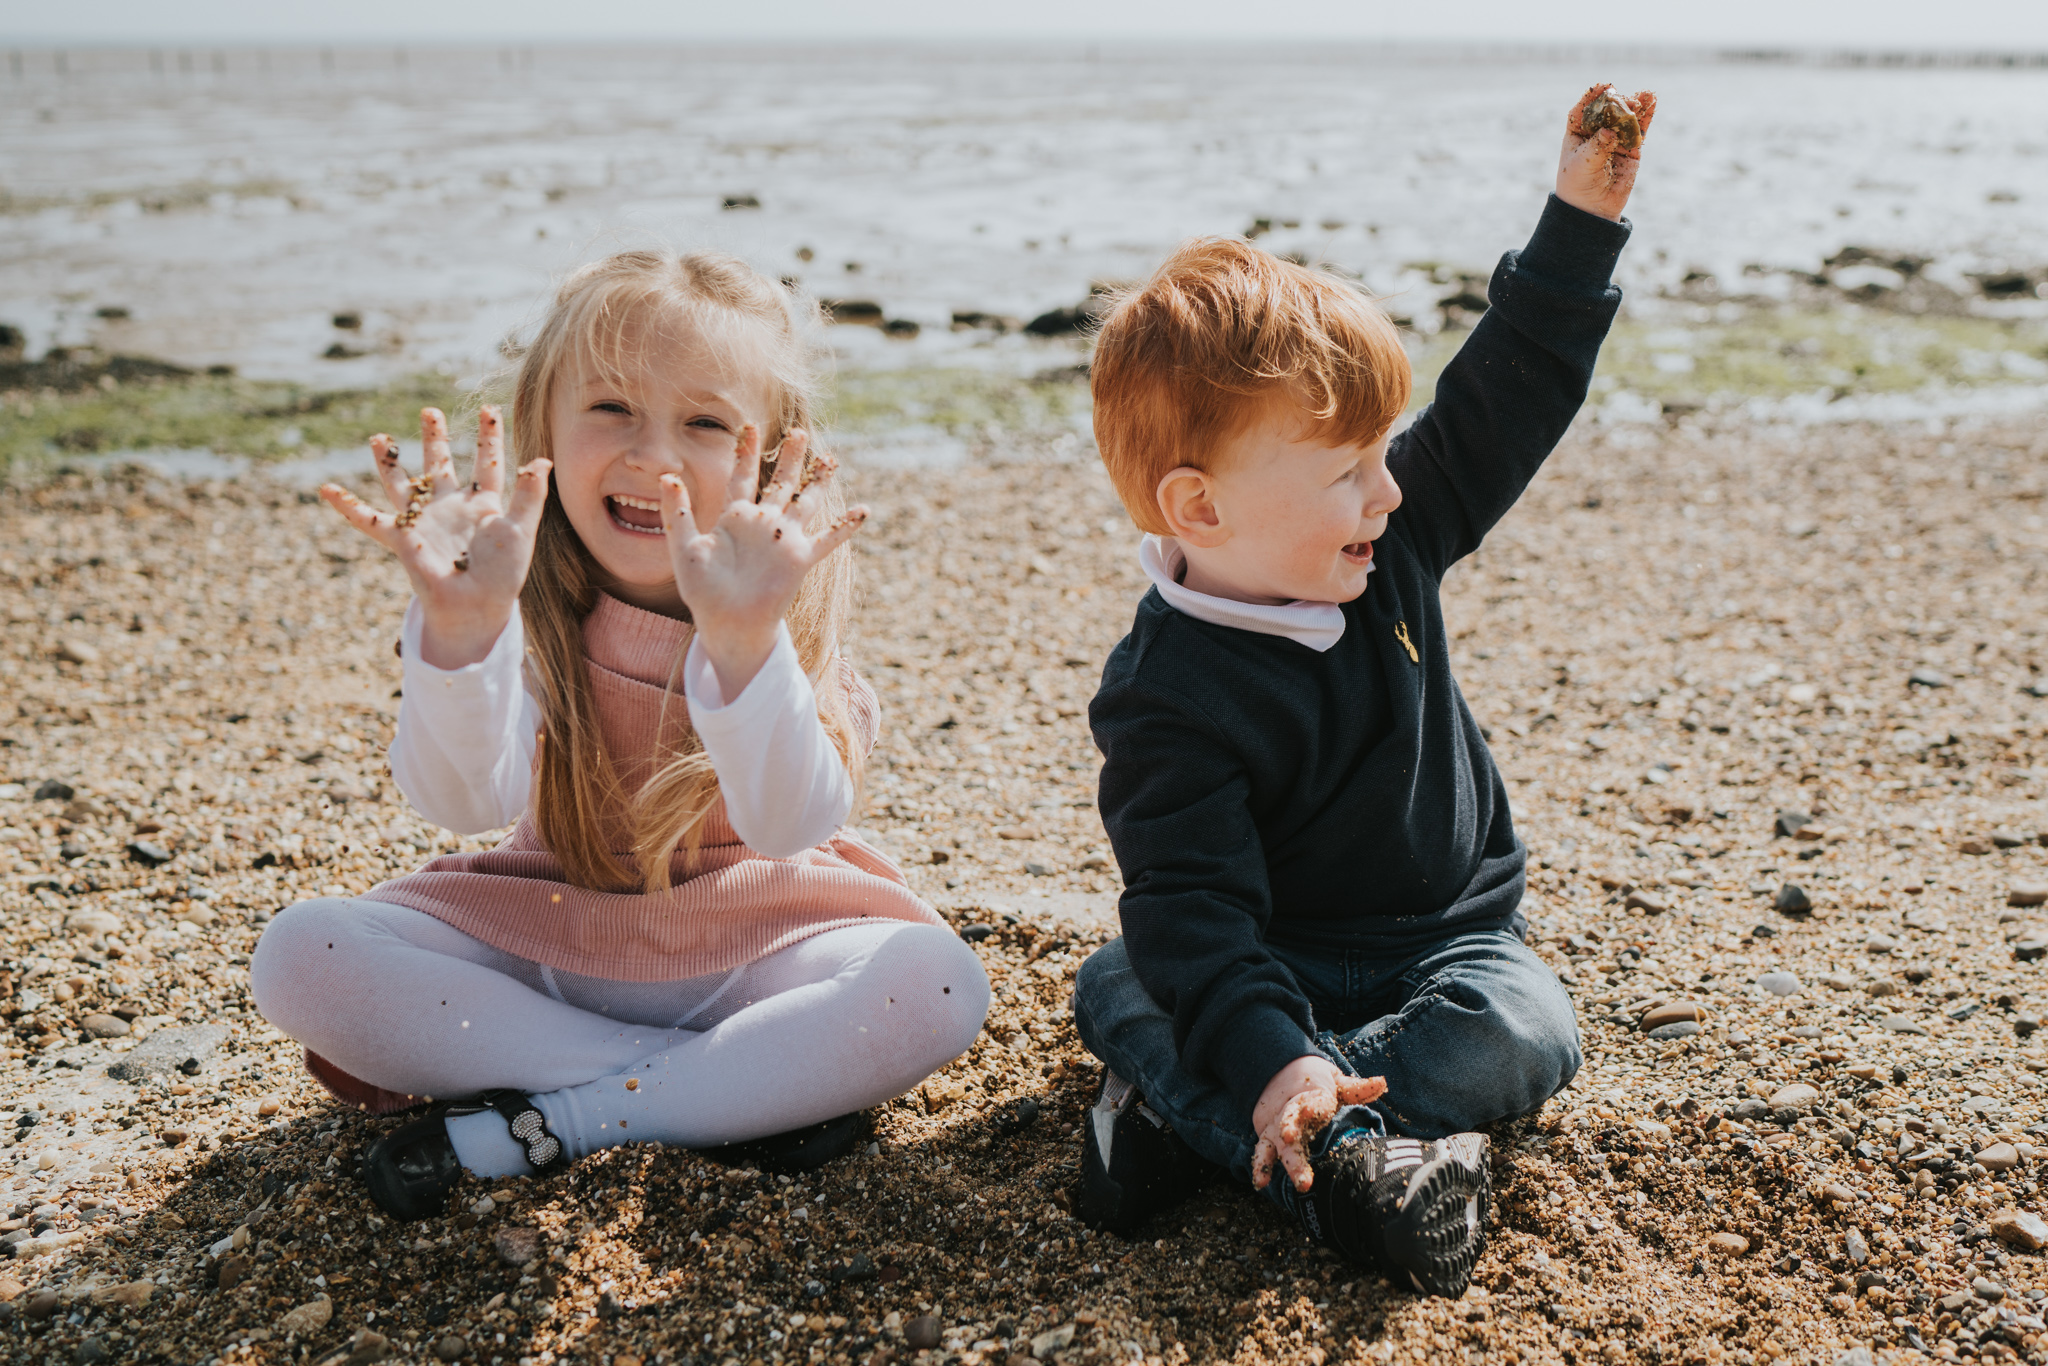 ruse-family-cudmore-grove-beach-family-session-grace-elizabeth-colchester-essex-alternative-wedding-lifestyle-photographer-essex-suffolk-devon-19.jpg